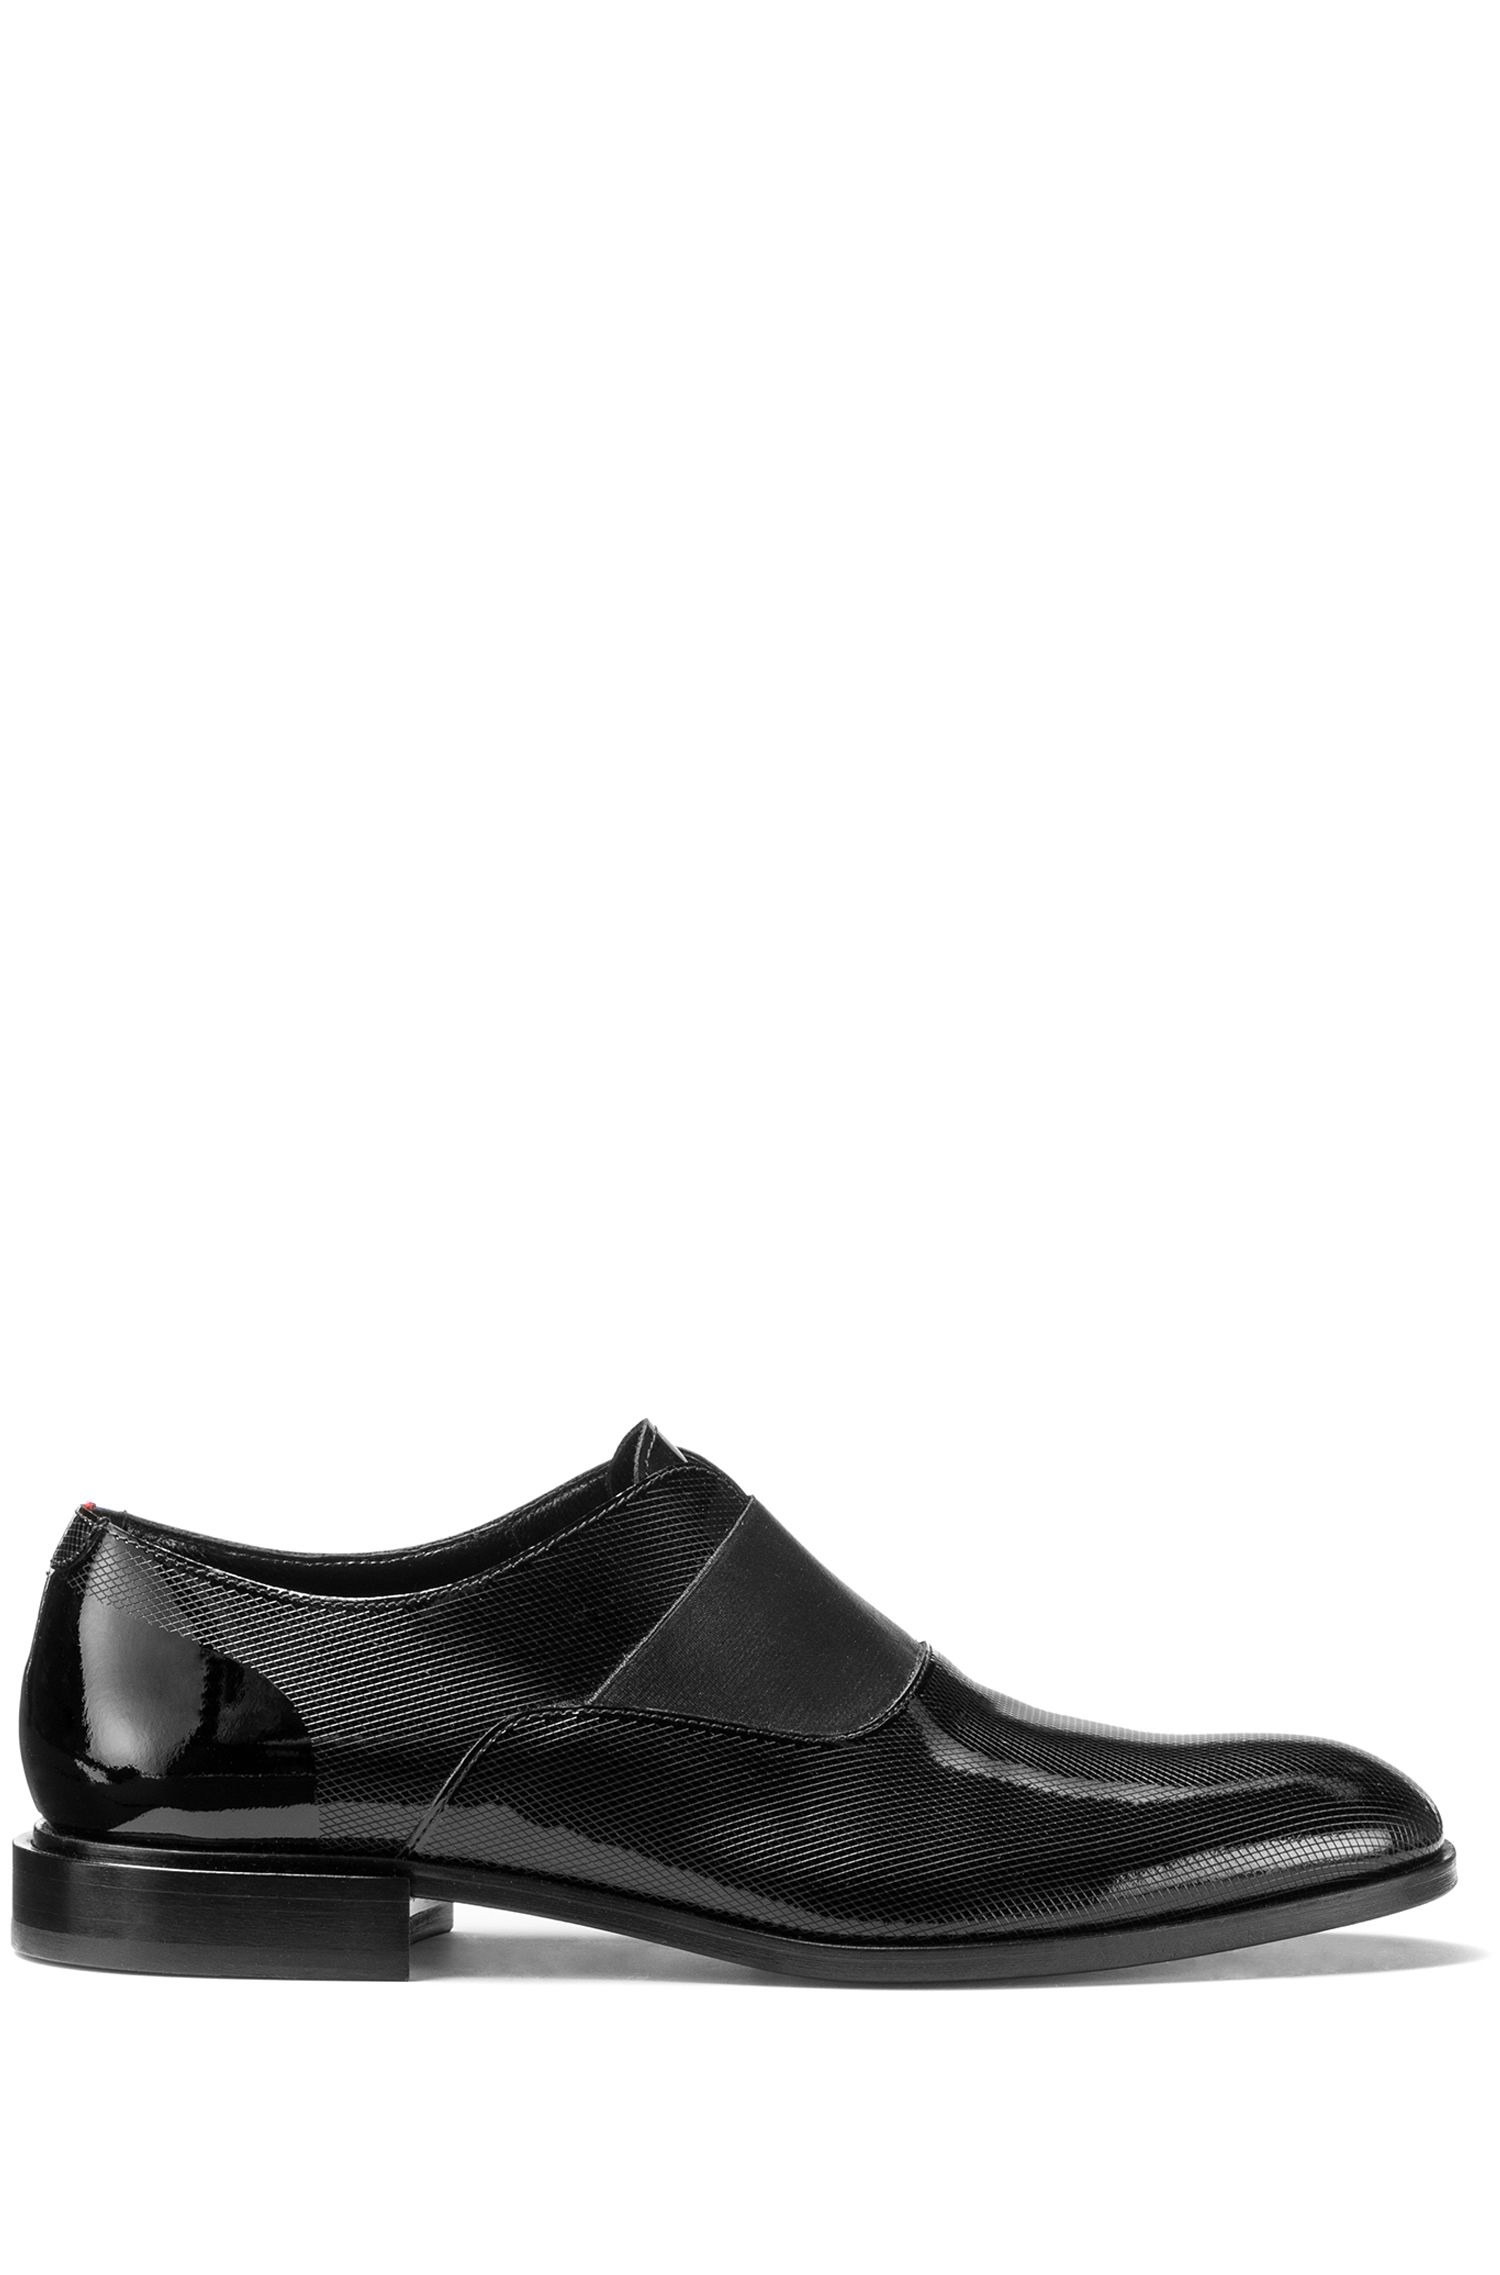 Slip-on shoes in patent leather with laser detail